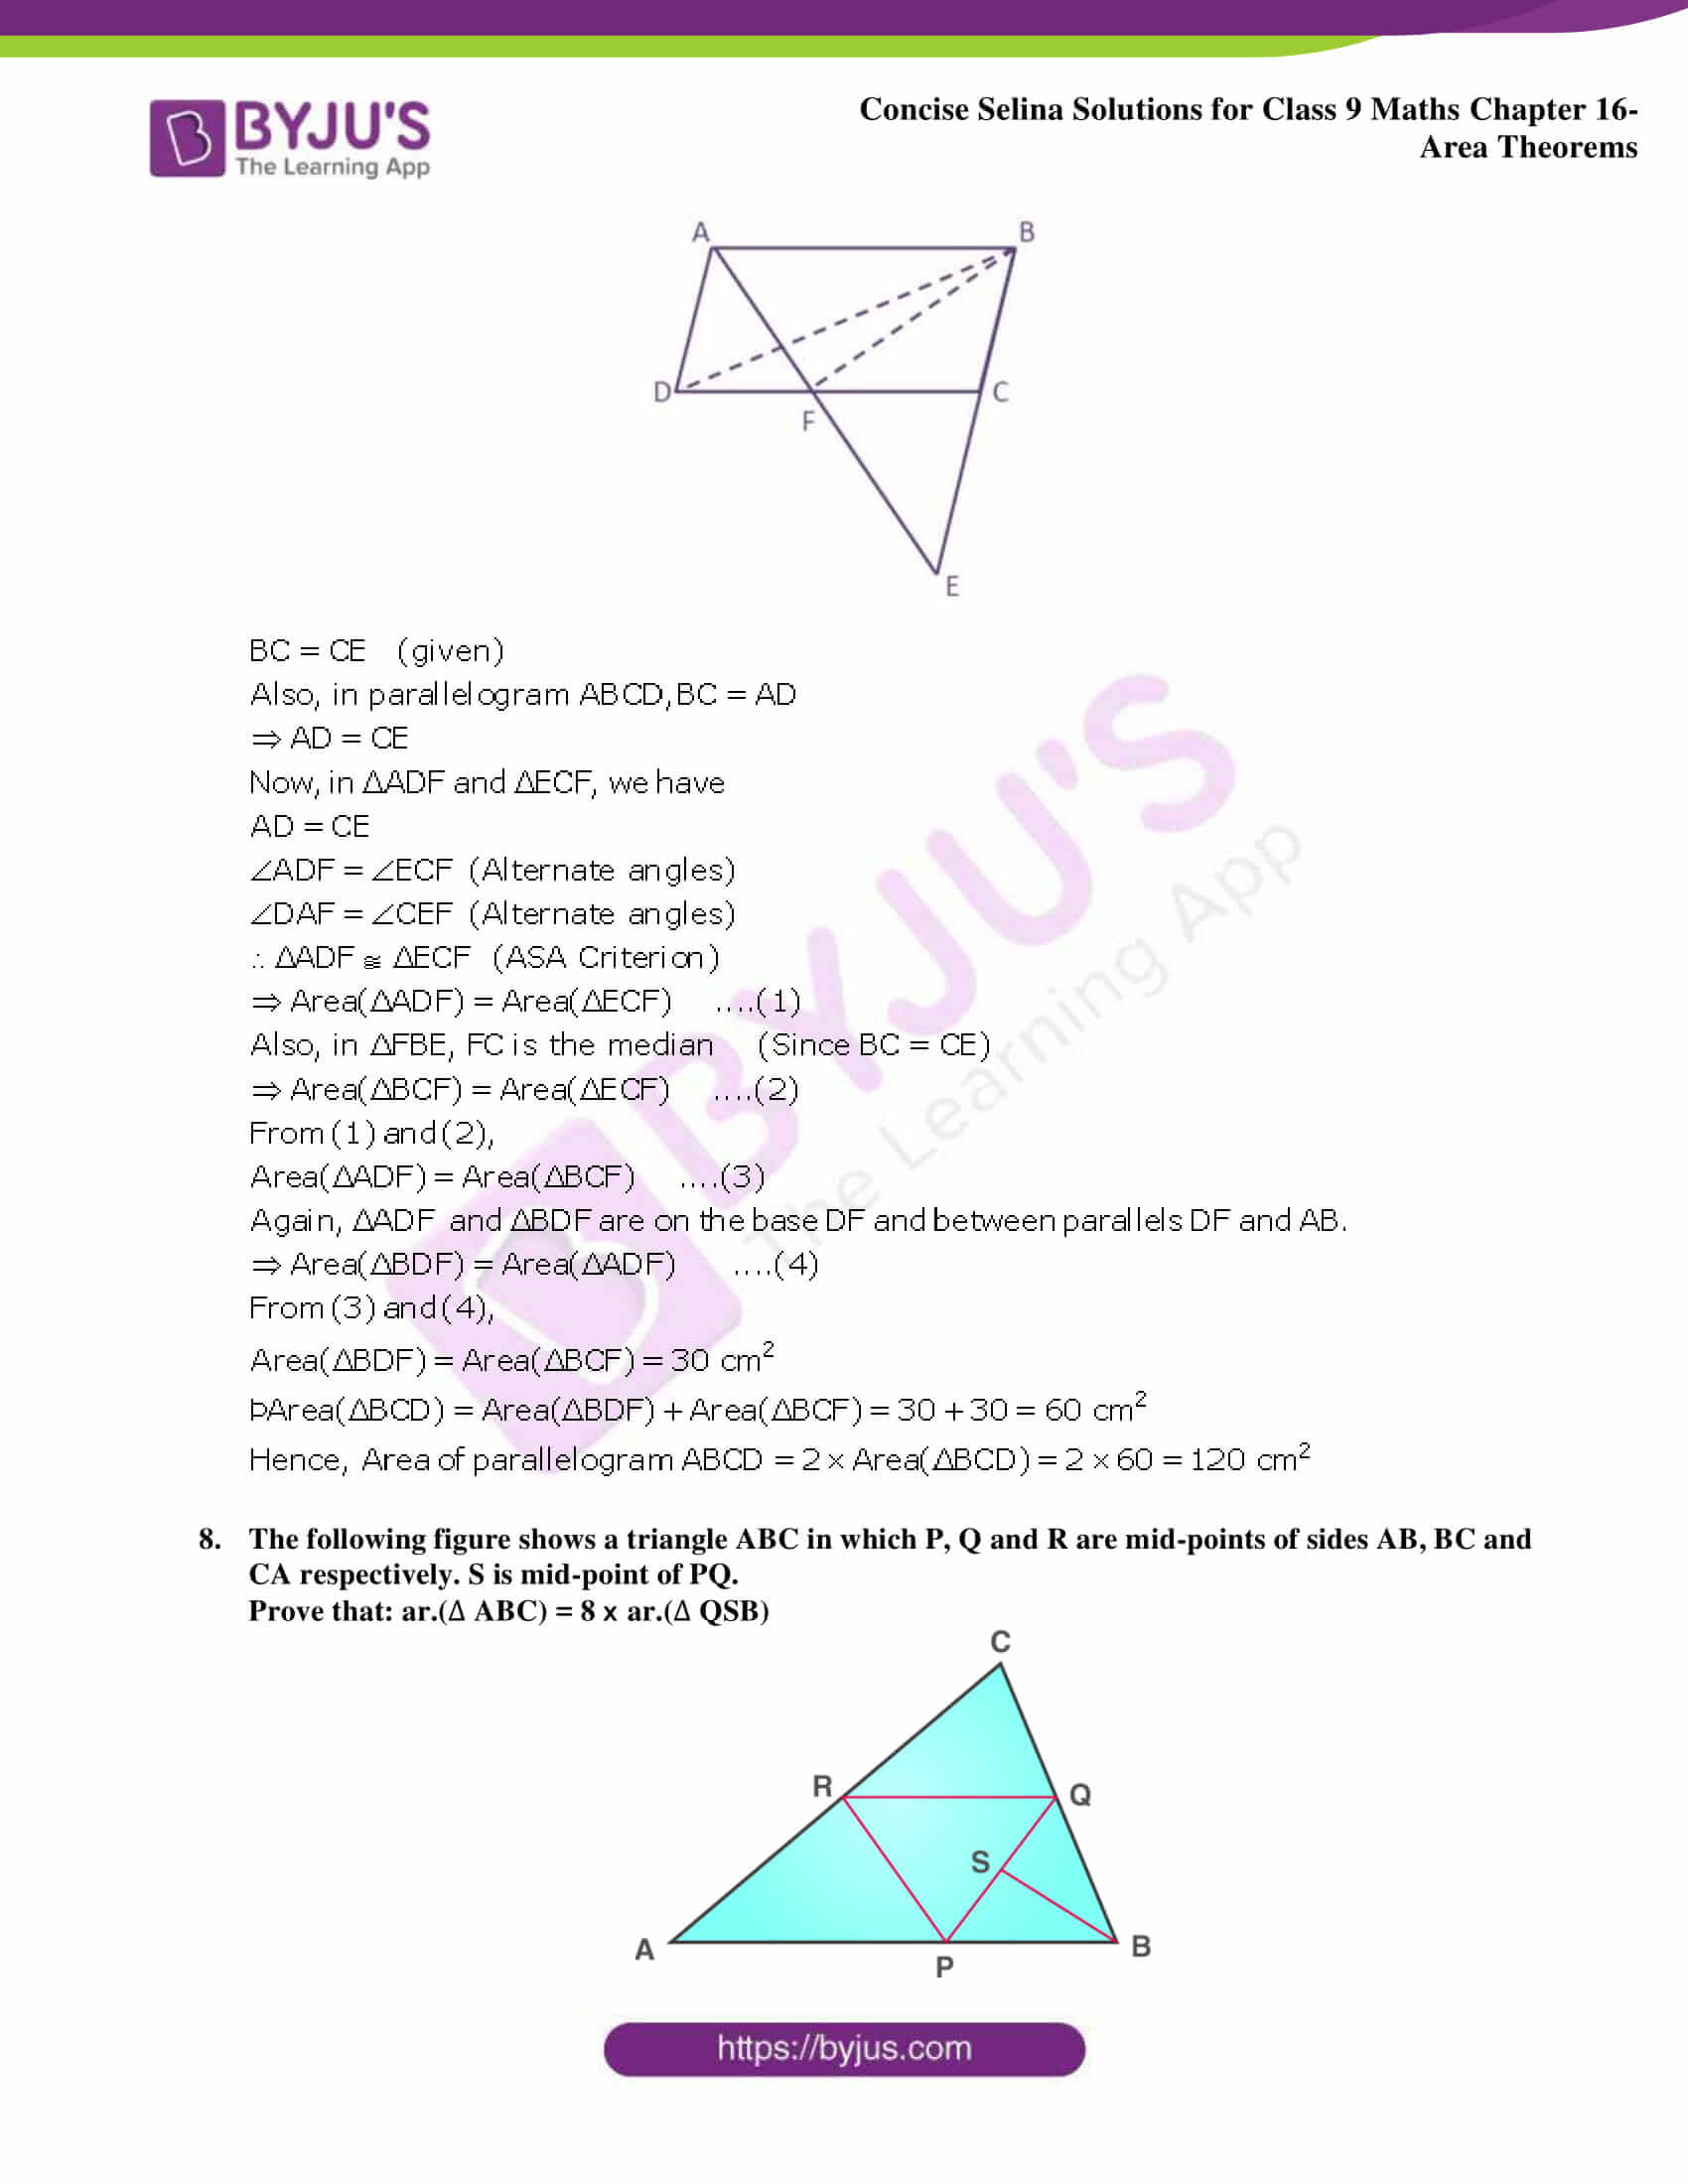 Concise Selina Solutions Class 9 Maths Chapter 16 Area Theorems part 21